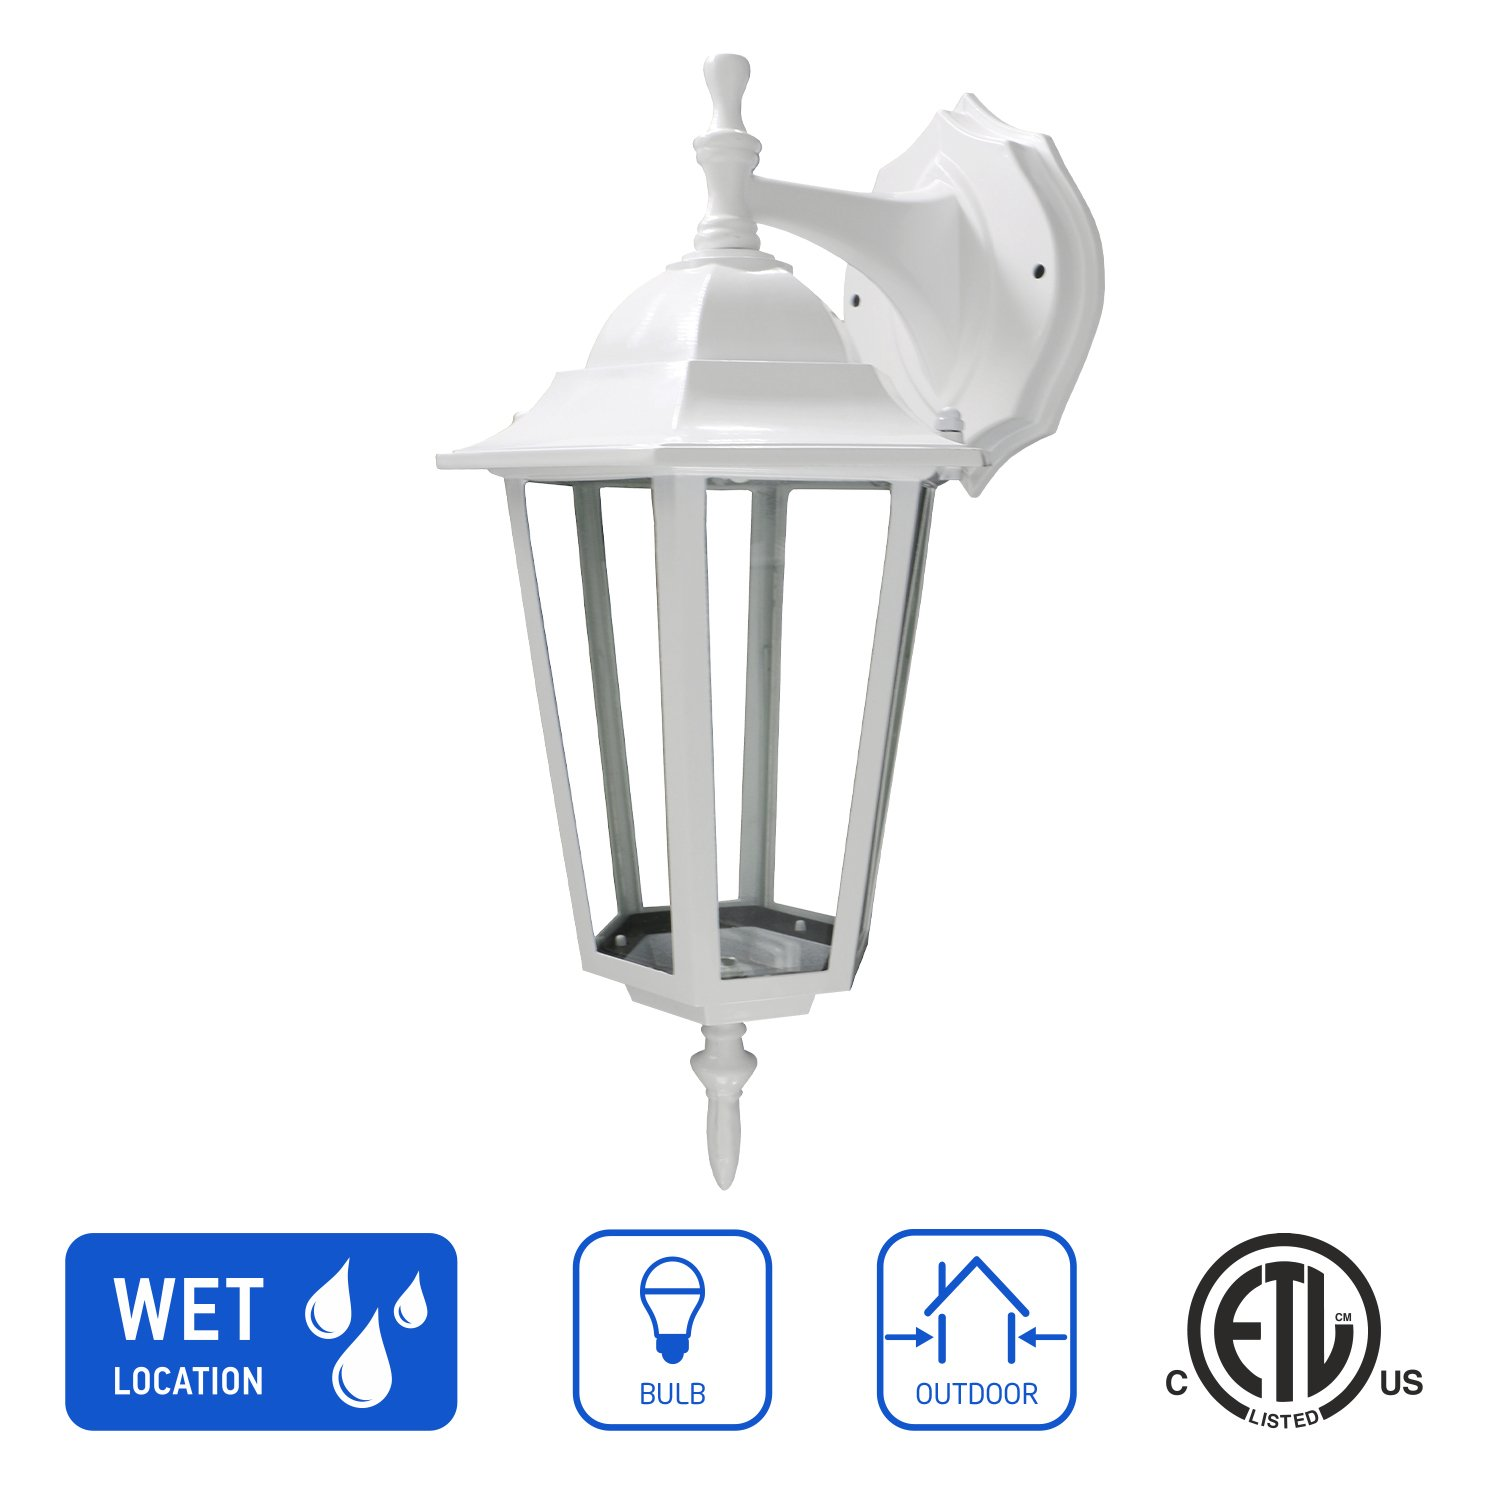 in Home 1-Light Outdoor Wall Mount Lantern Downward Fixture L01 Series Traditional Design White Finish, Clear Glass Shade, ETL Listed